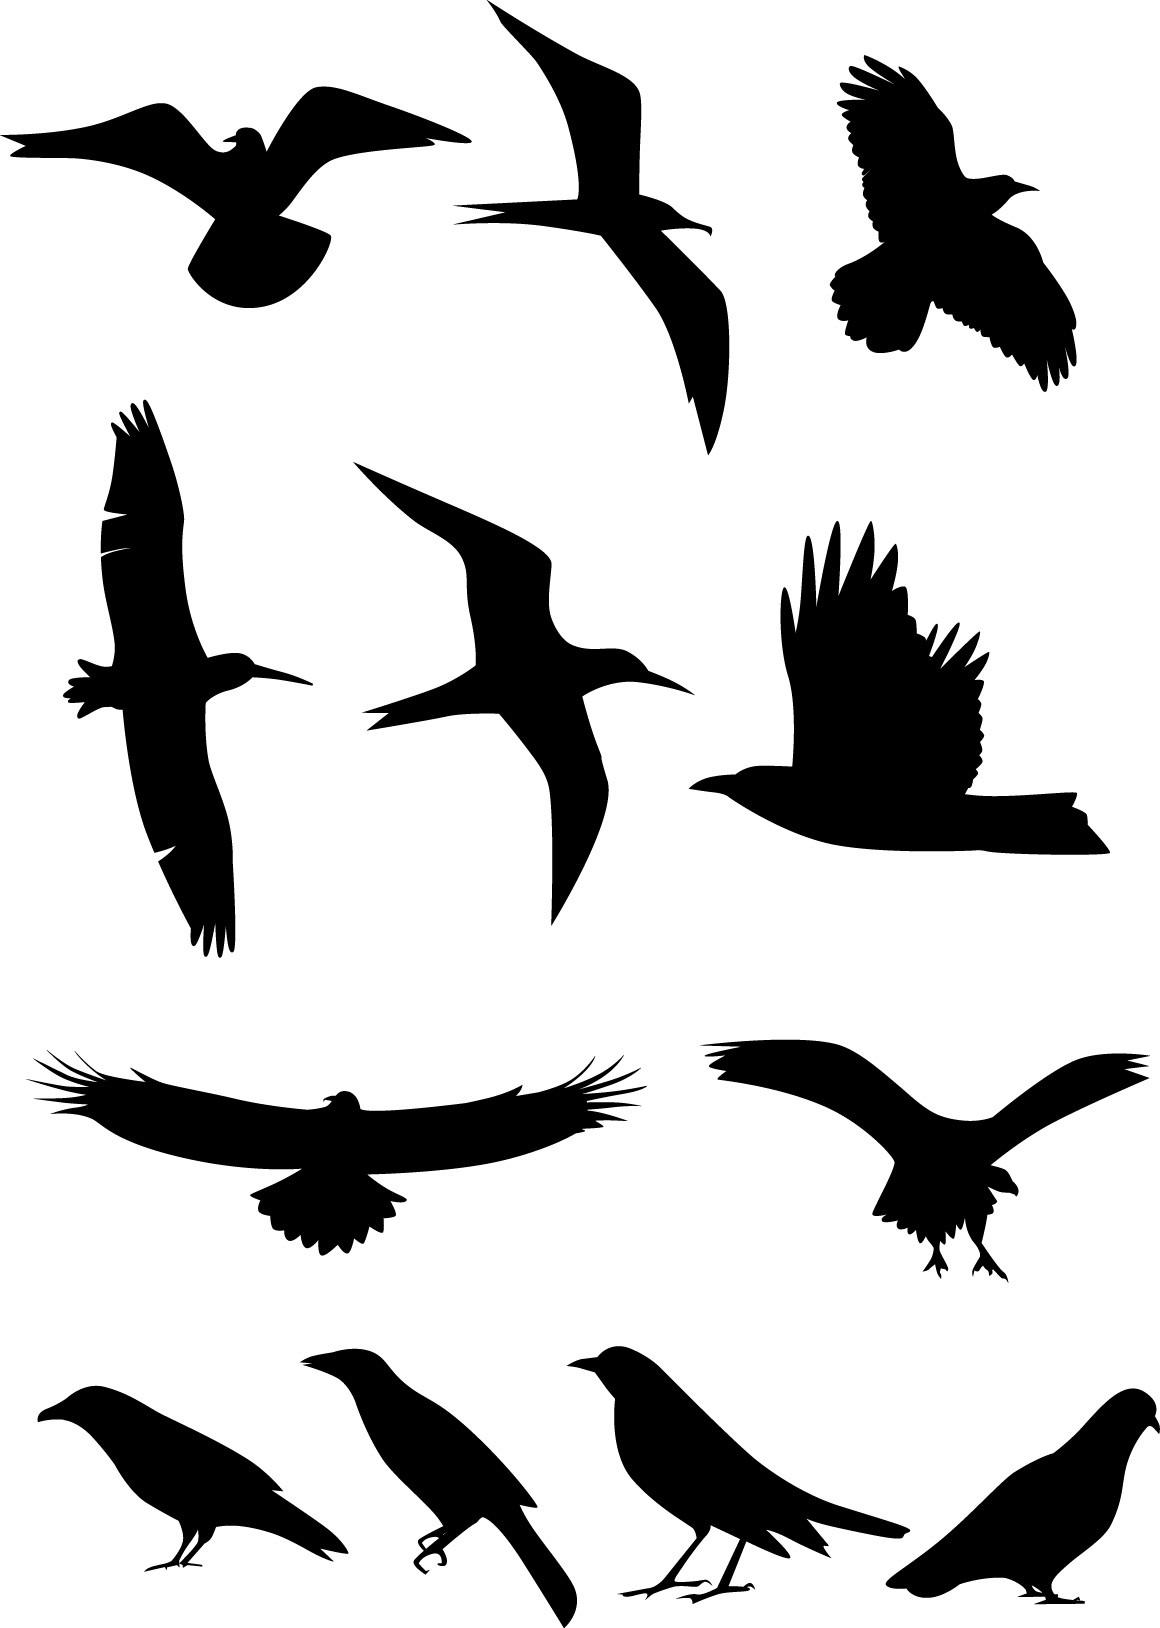 Bird silhouette png